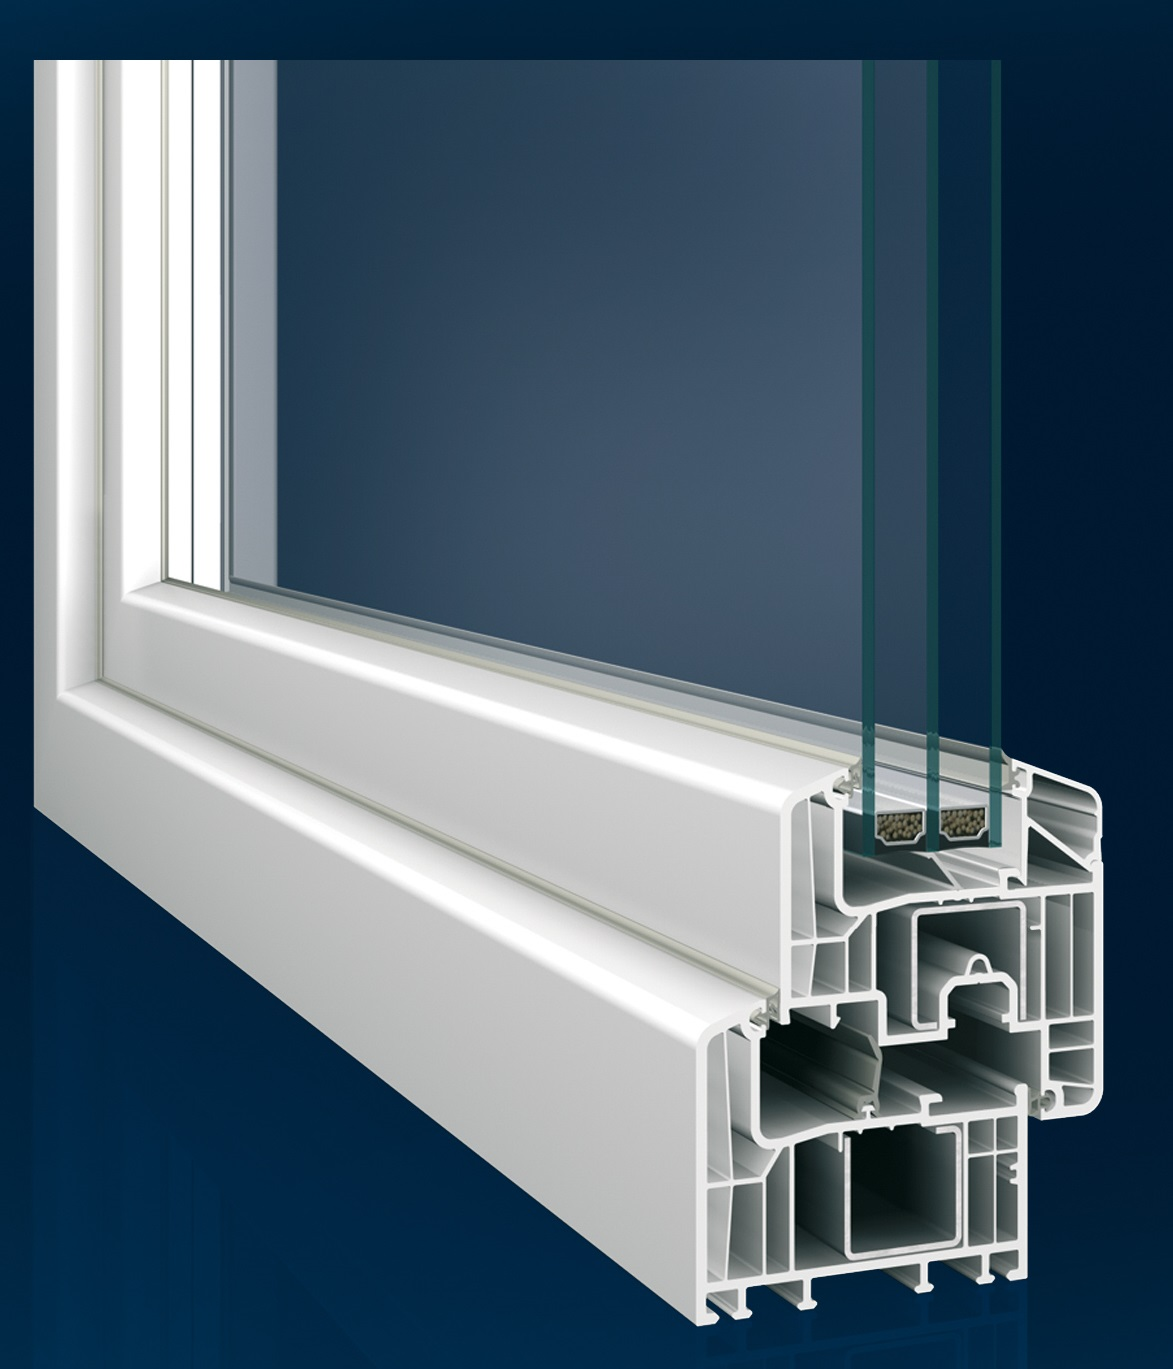 Eforte window on blue - Medium